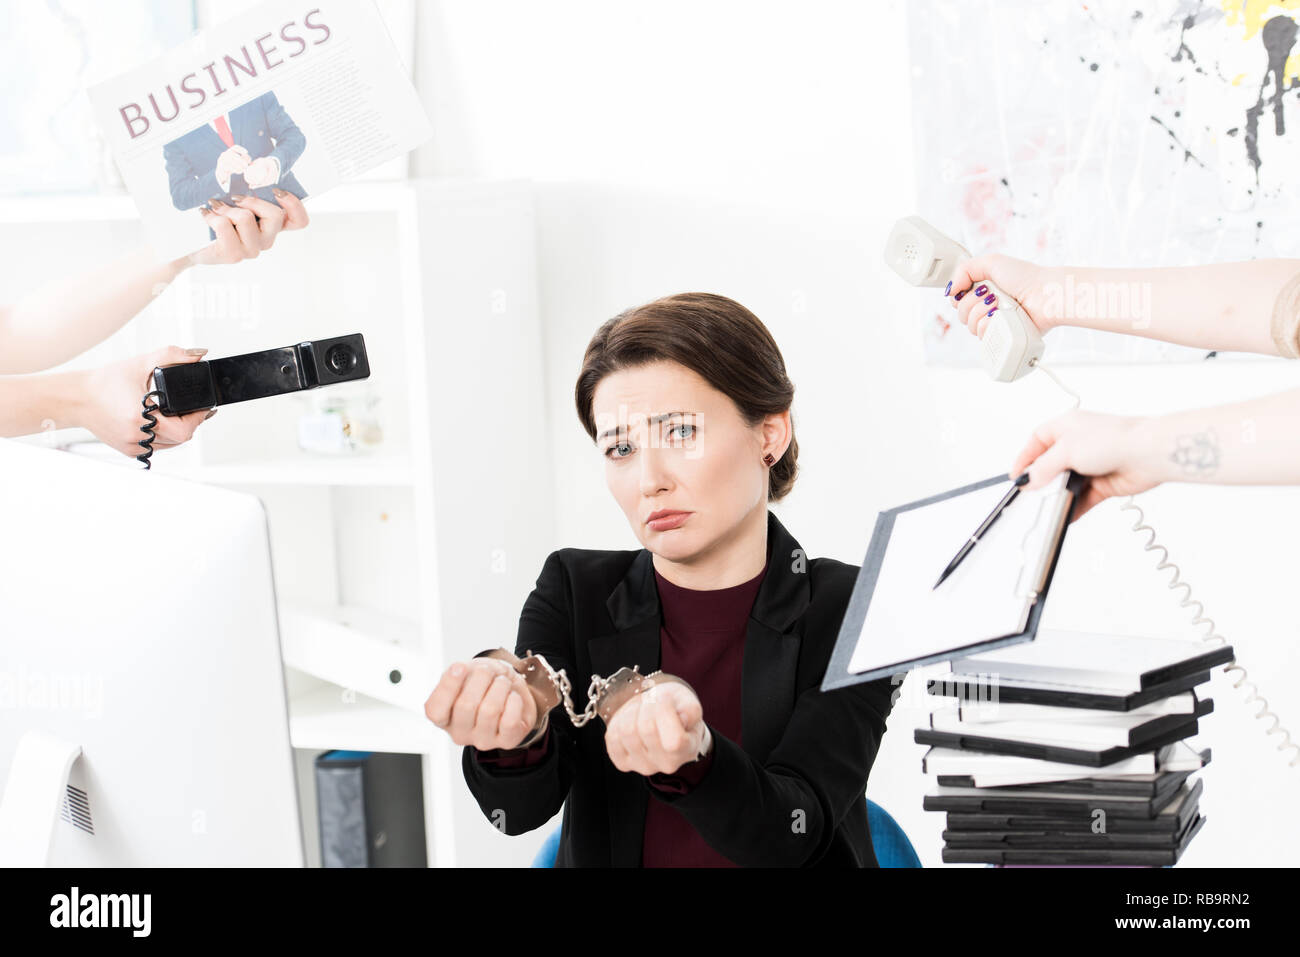 sad businesswoman showing hands with handcuffs while secretaries holding newspaper, telephones and clipboard in office - Stock Image